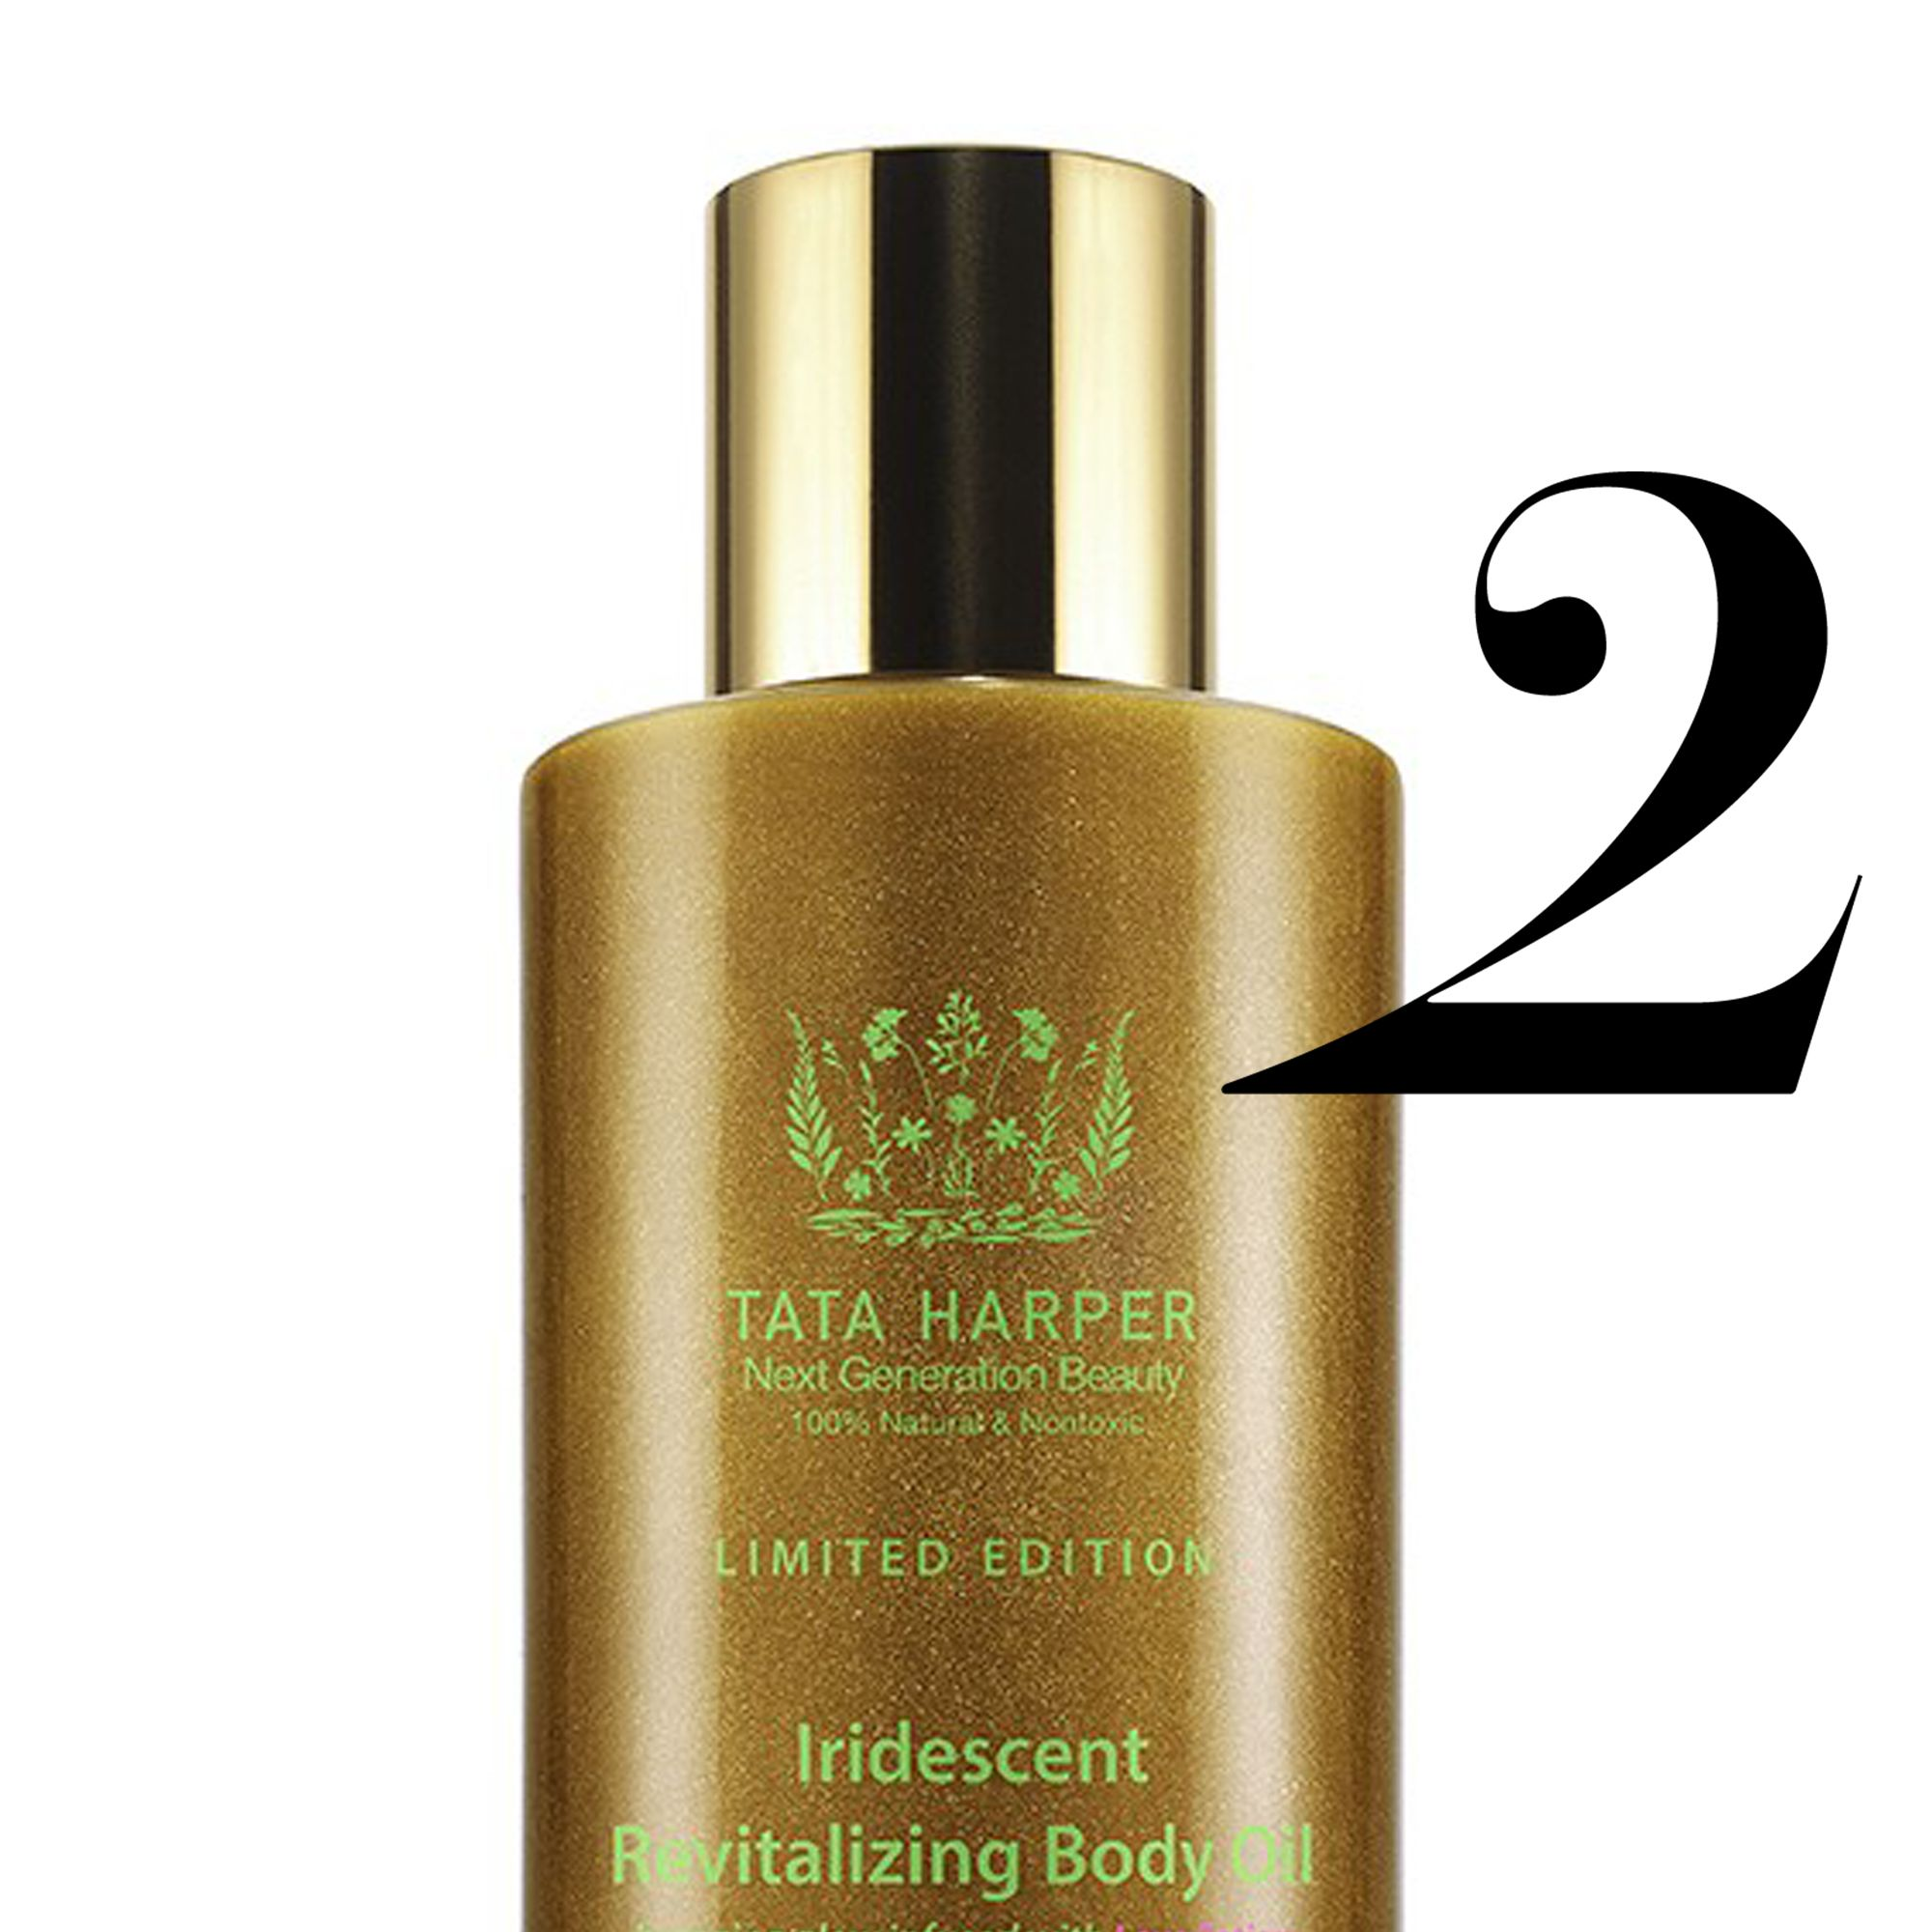 "<strong>Tata Harper</strong> Iridescent Revitalizing Body Oil, $95, <a target=""_blank"" href=""http://www.tataharperskincare.com/iridescent-revitalizing-body-oil"">tataharperskincare.com</a>."